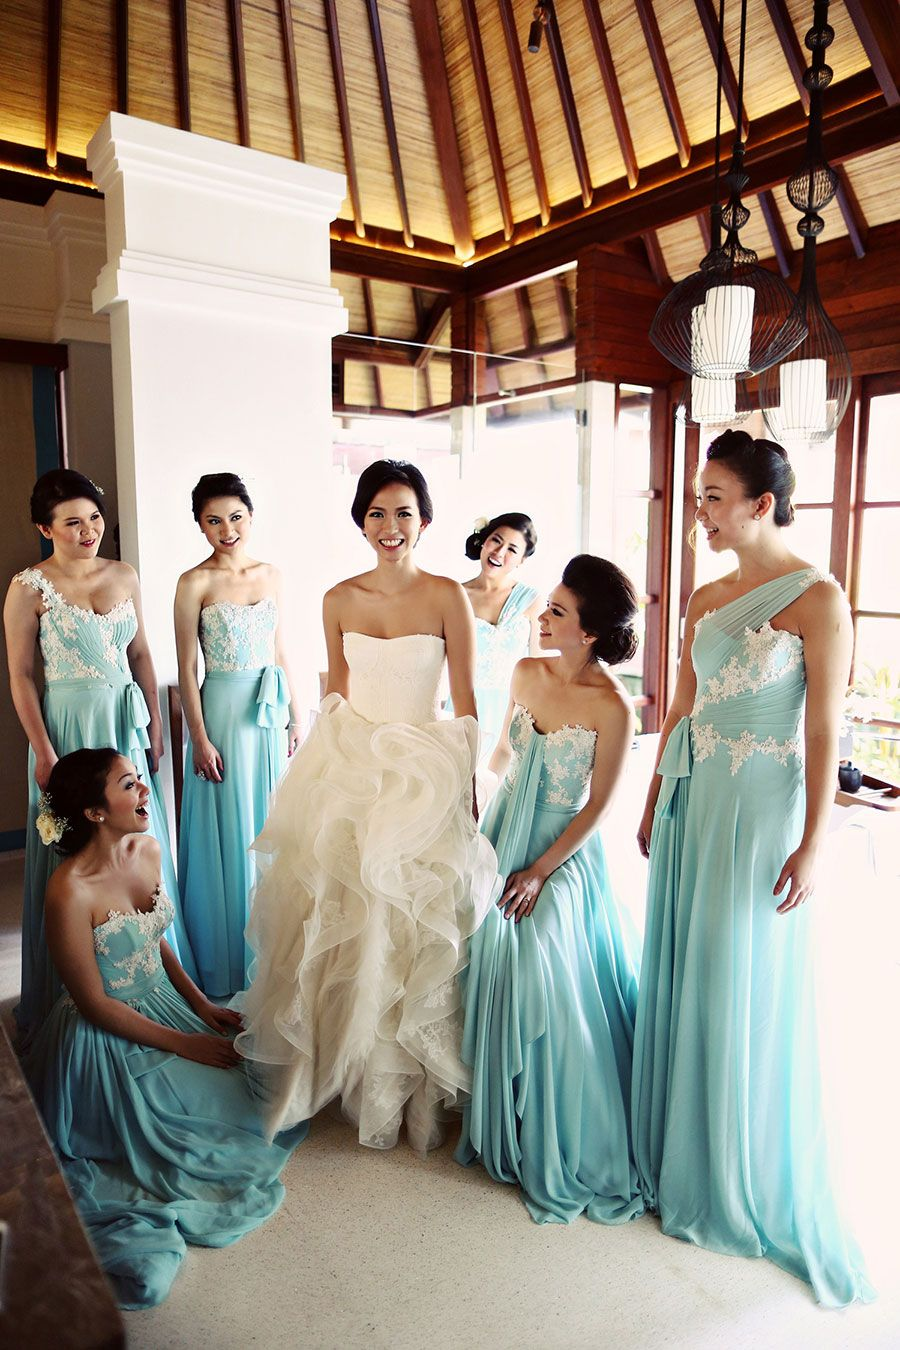 Mint bridesmaid dresses alvin and cindys nautical beach wedding mint bridesmaid dresses alvin and cindys nautical beach wedding in balialvin and cindys nautical beach ombrellifo Gallery